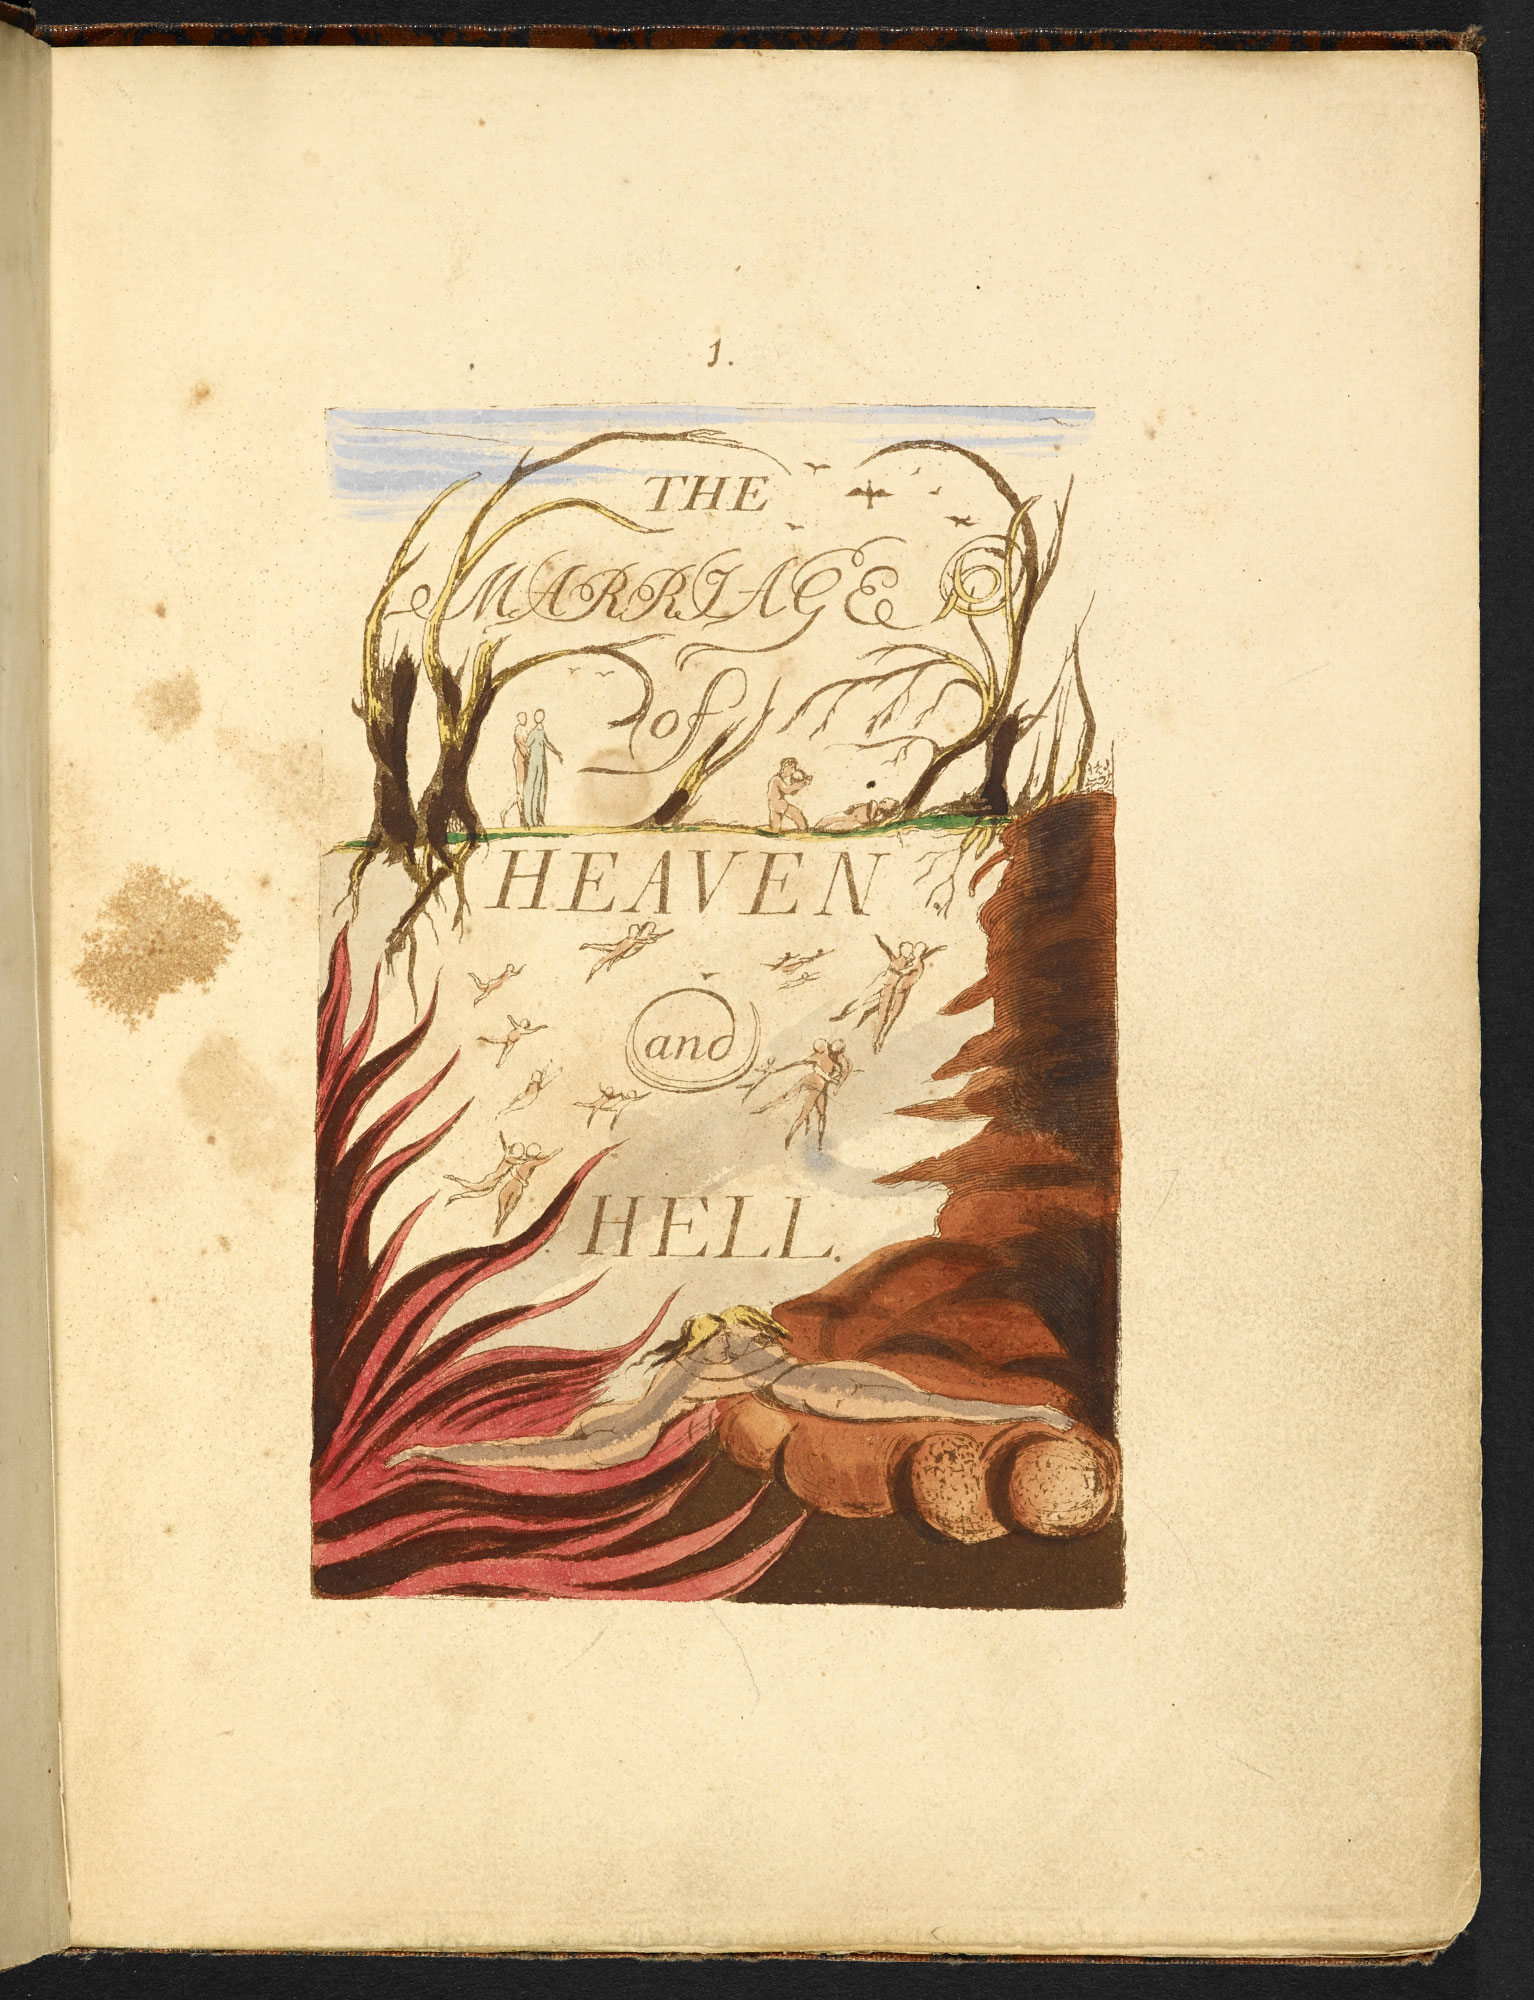 The Marriage of Heaven and Hell by William Blake